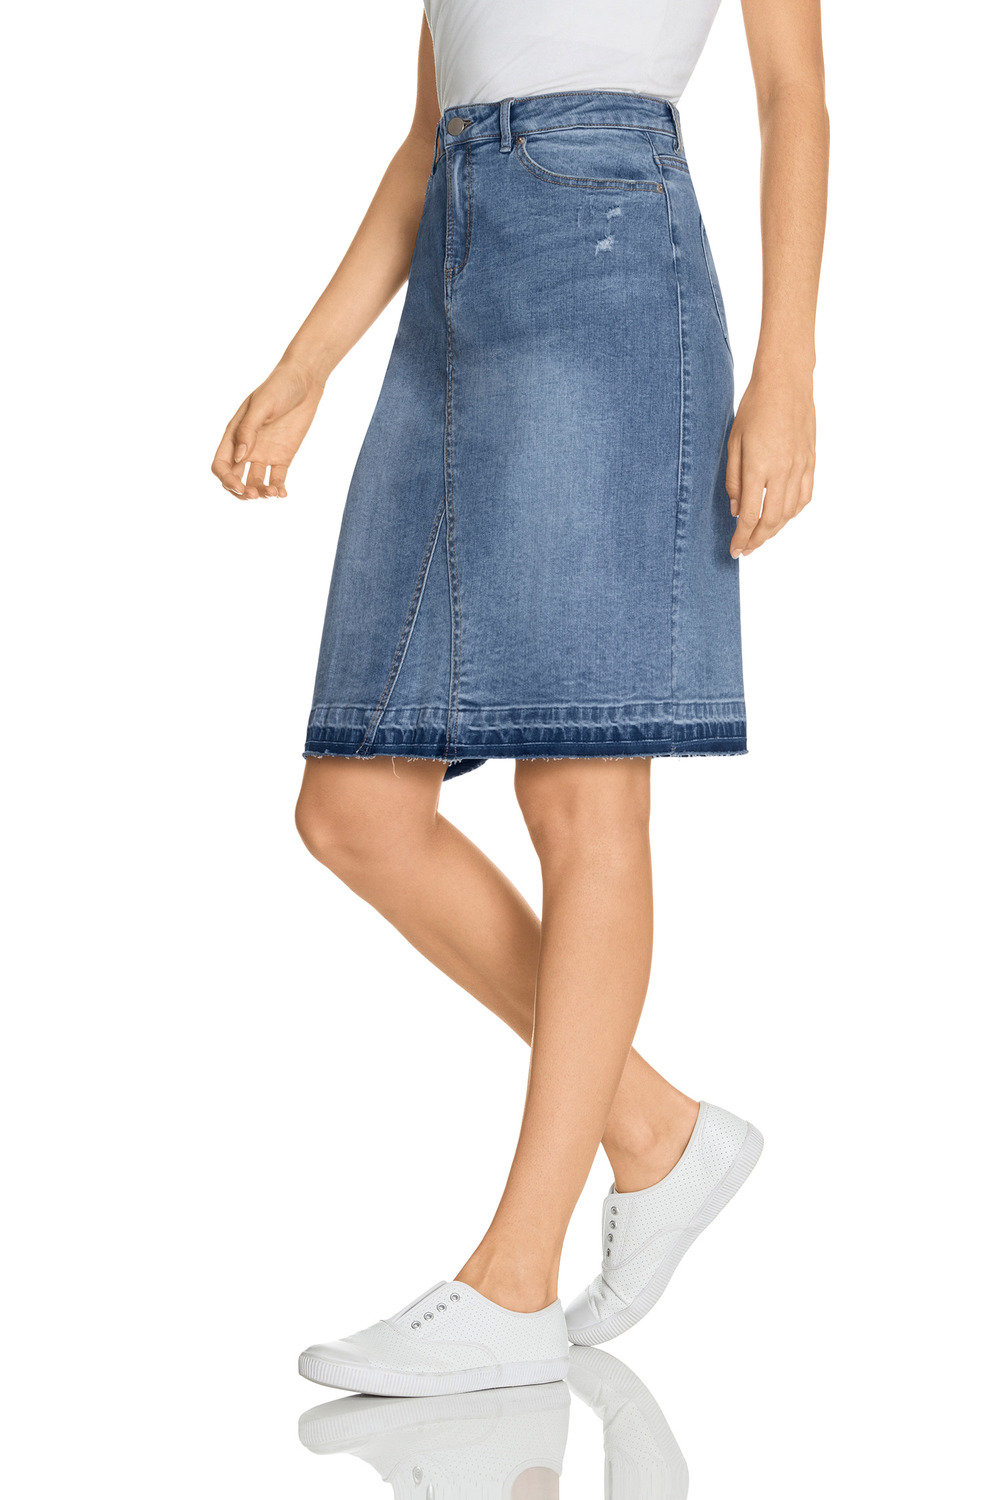 b076a63fd2d0c Emerge Denim Skirt Online